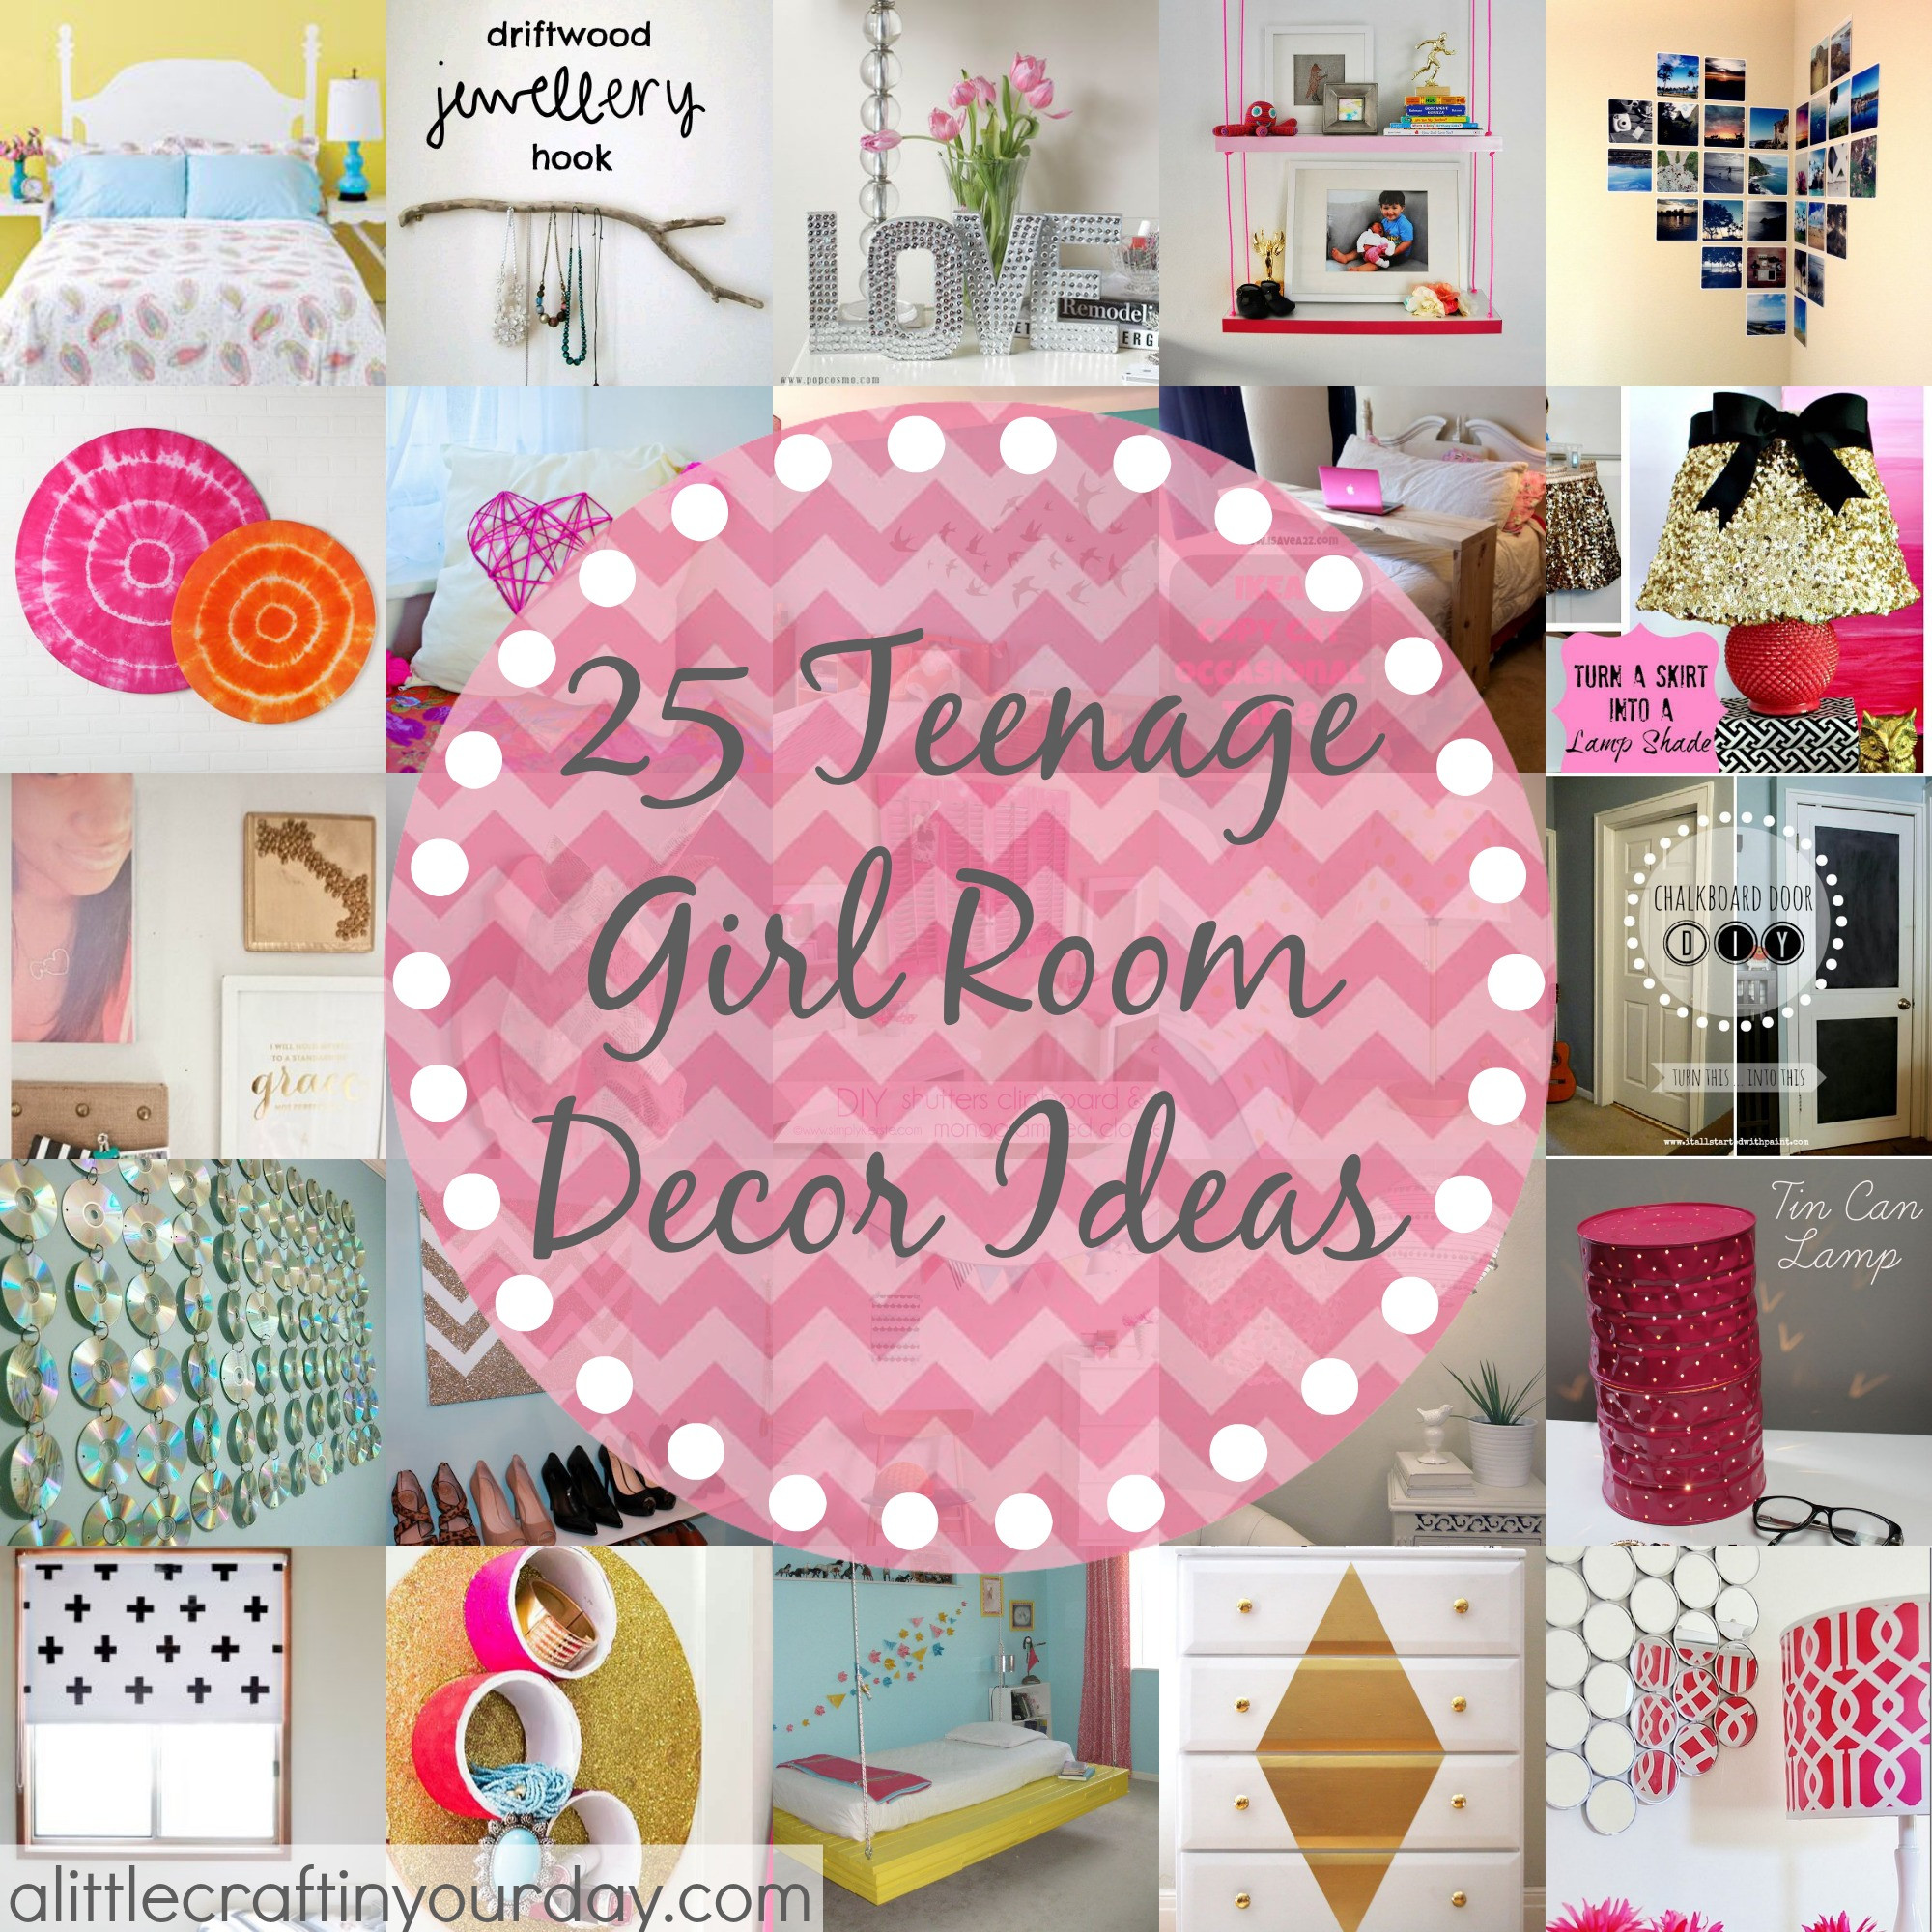 Best ideas about DIY Room Decor For Teens . Save or Pin 25 More Teenage Girl Room Decor Ideas A Little Craft In Now.